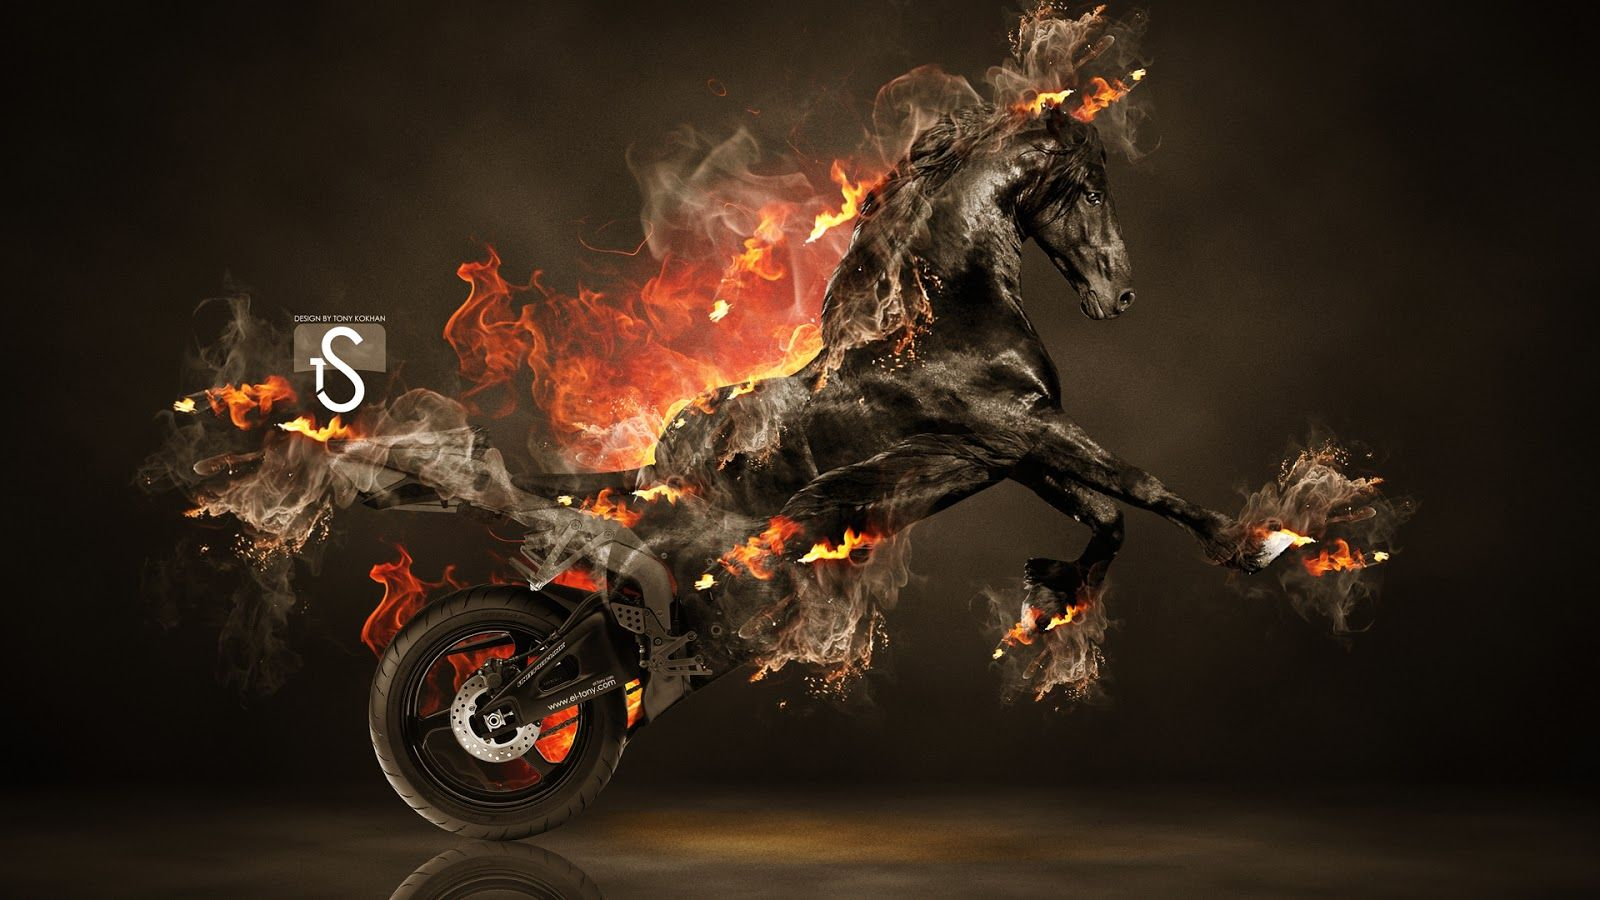 Good Wallpaper Horse Nightmare - 9958ca00e581408d432284ced6afff4a  Perfect Image Reference_934240.jpg